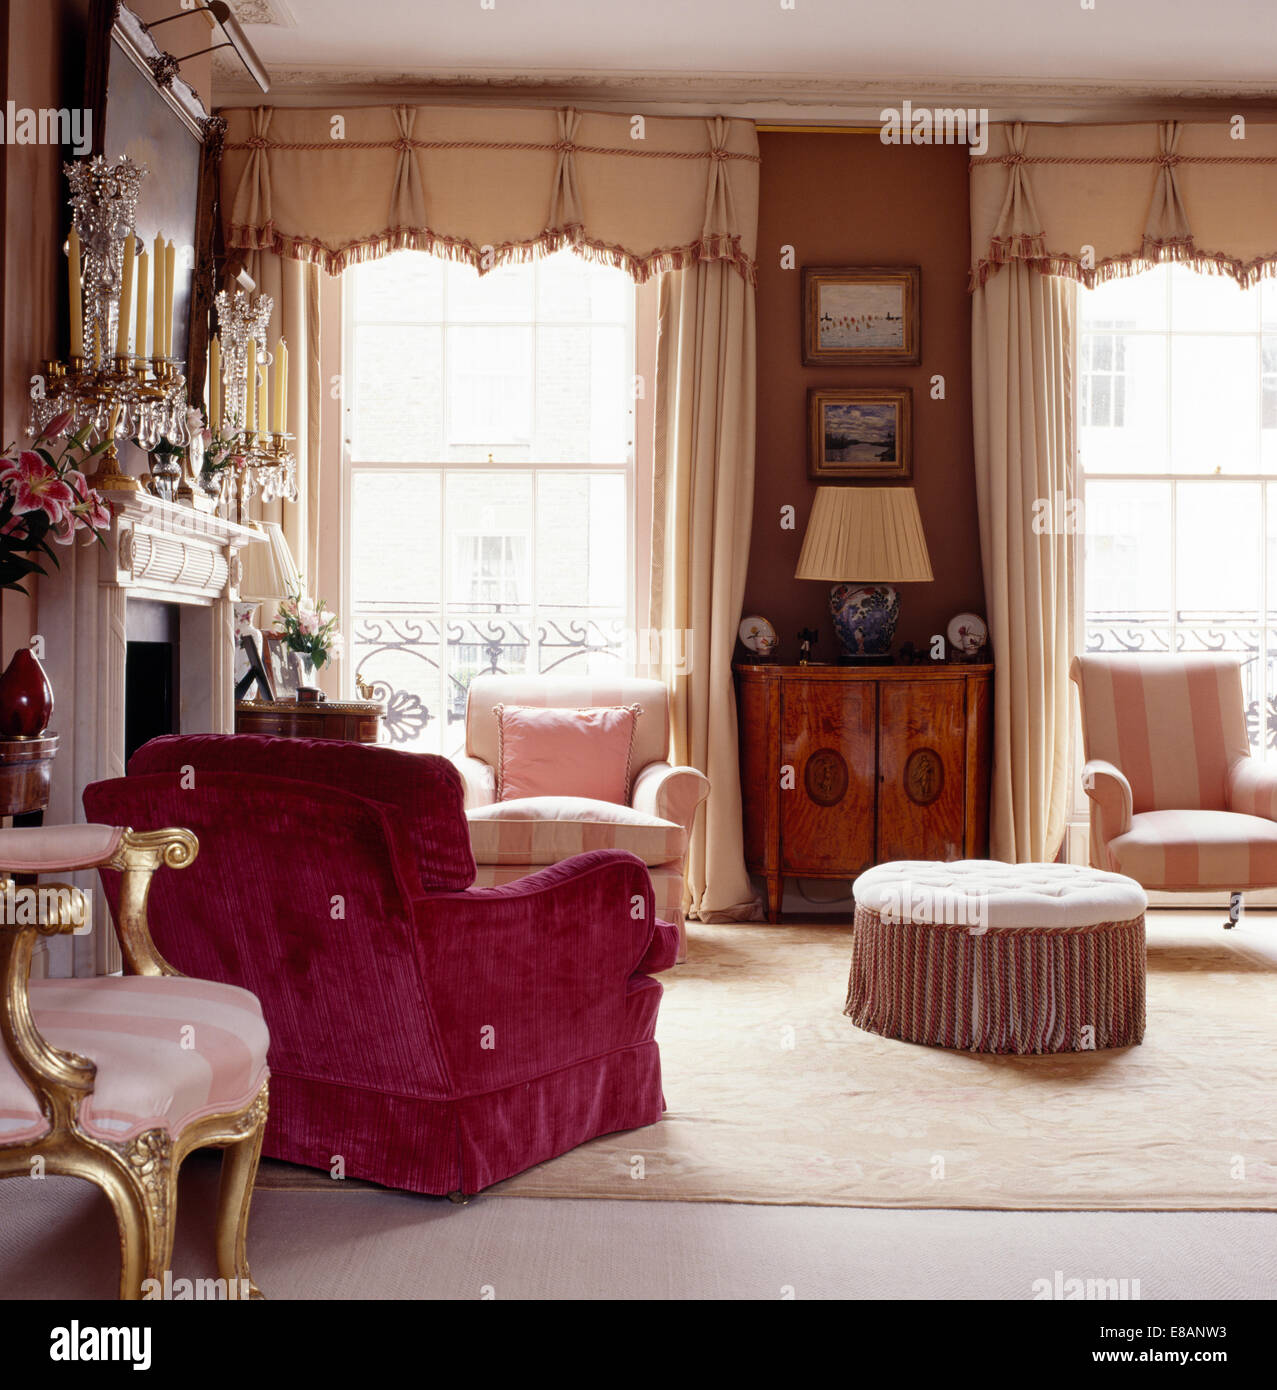 Attractive Pink Velvet Upholstered Armchair In Elegant Townhouse Living Room With  Cream Drapes And Pelmets On Windows